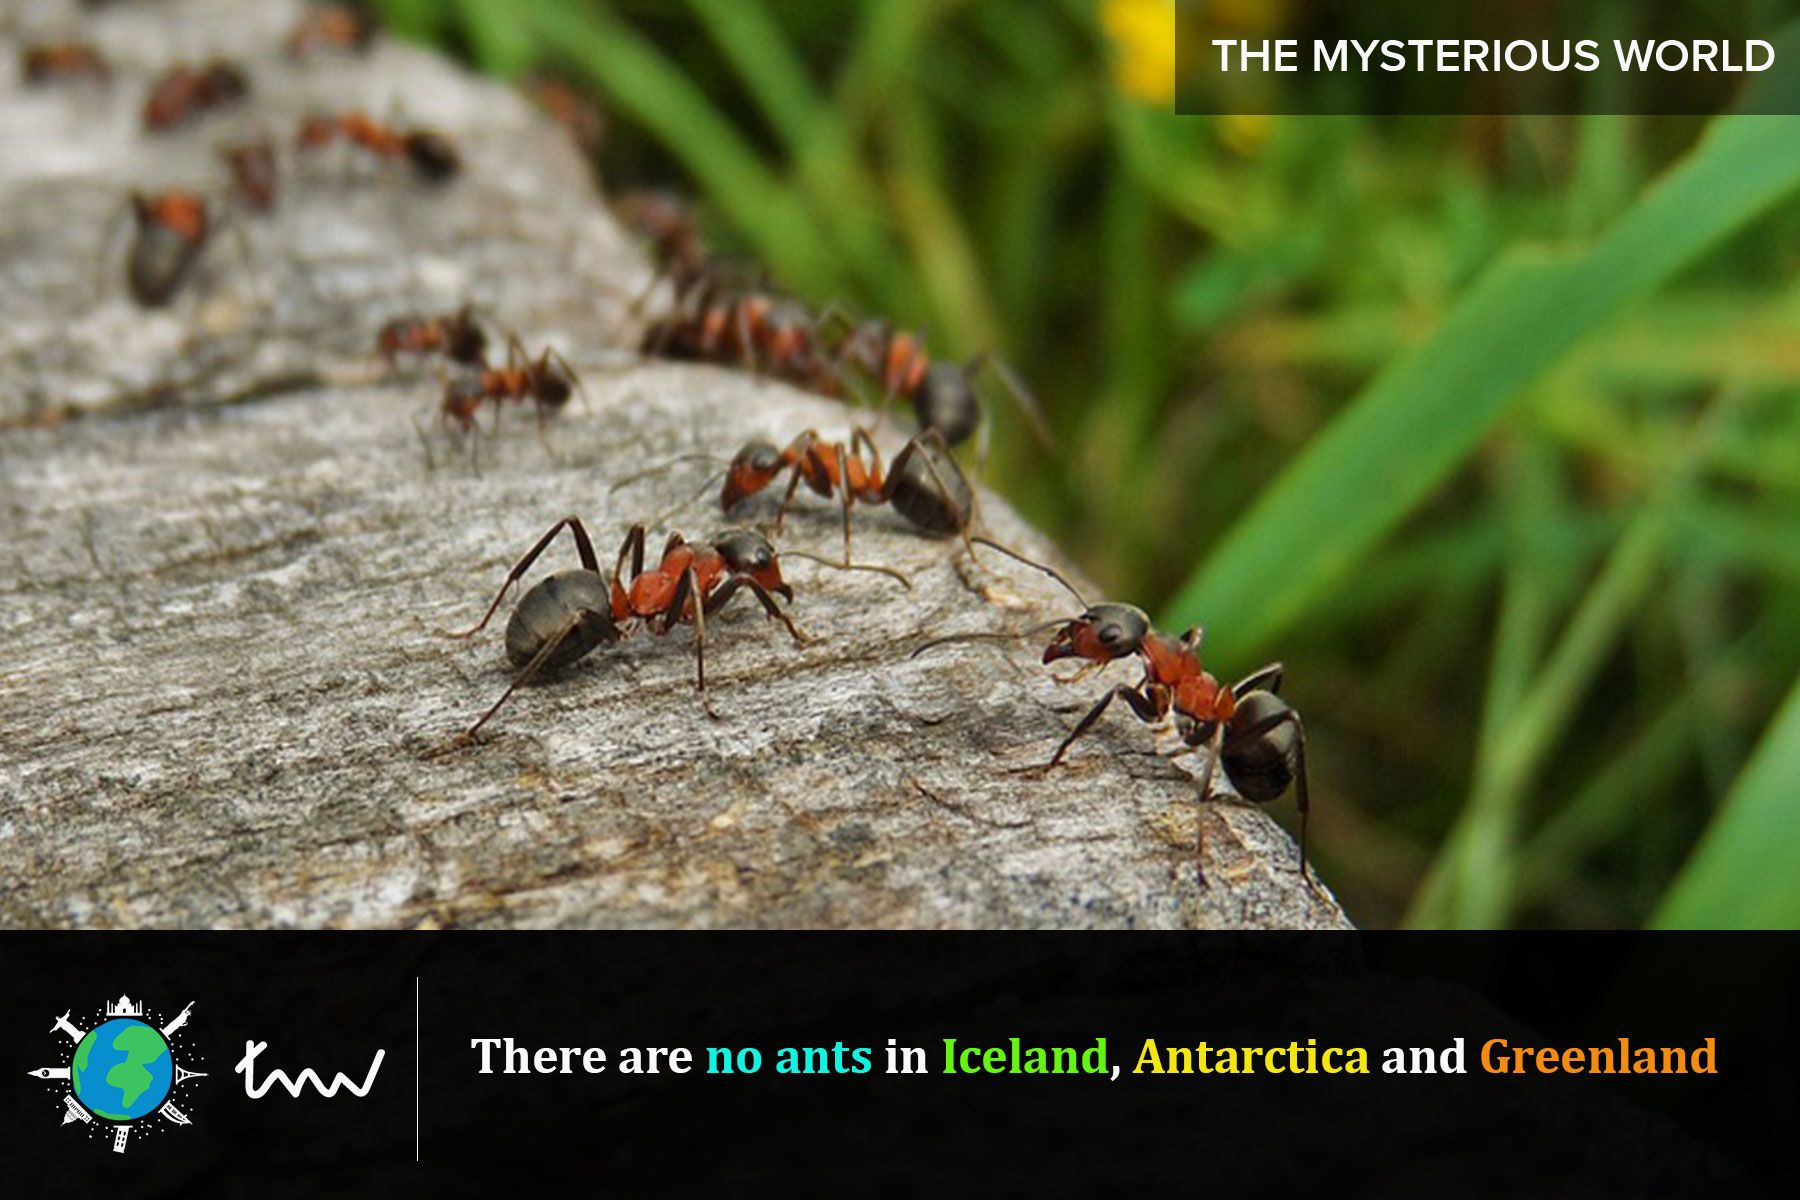 insects ants facts Kill ants, Ants, Ants in garden